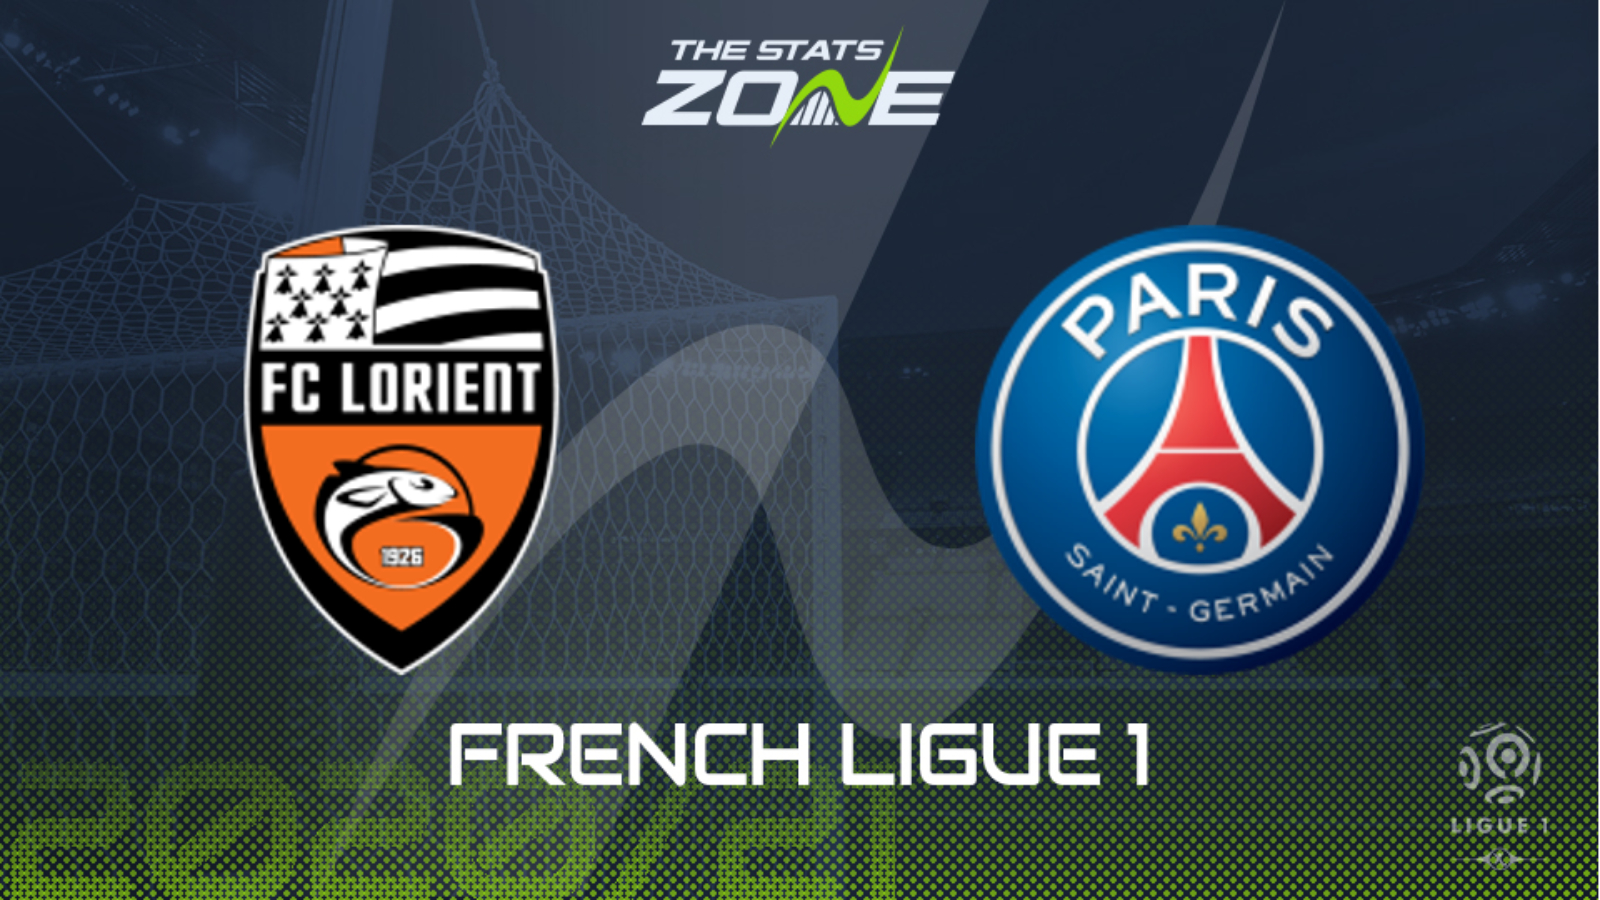 Lorient v psg betting preview back lay betting explained synonym